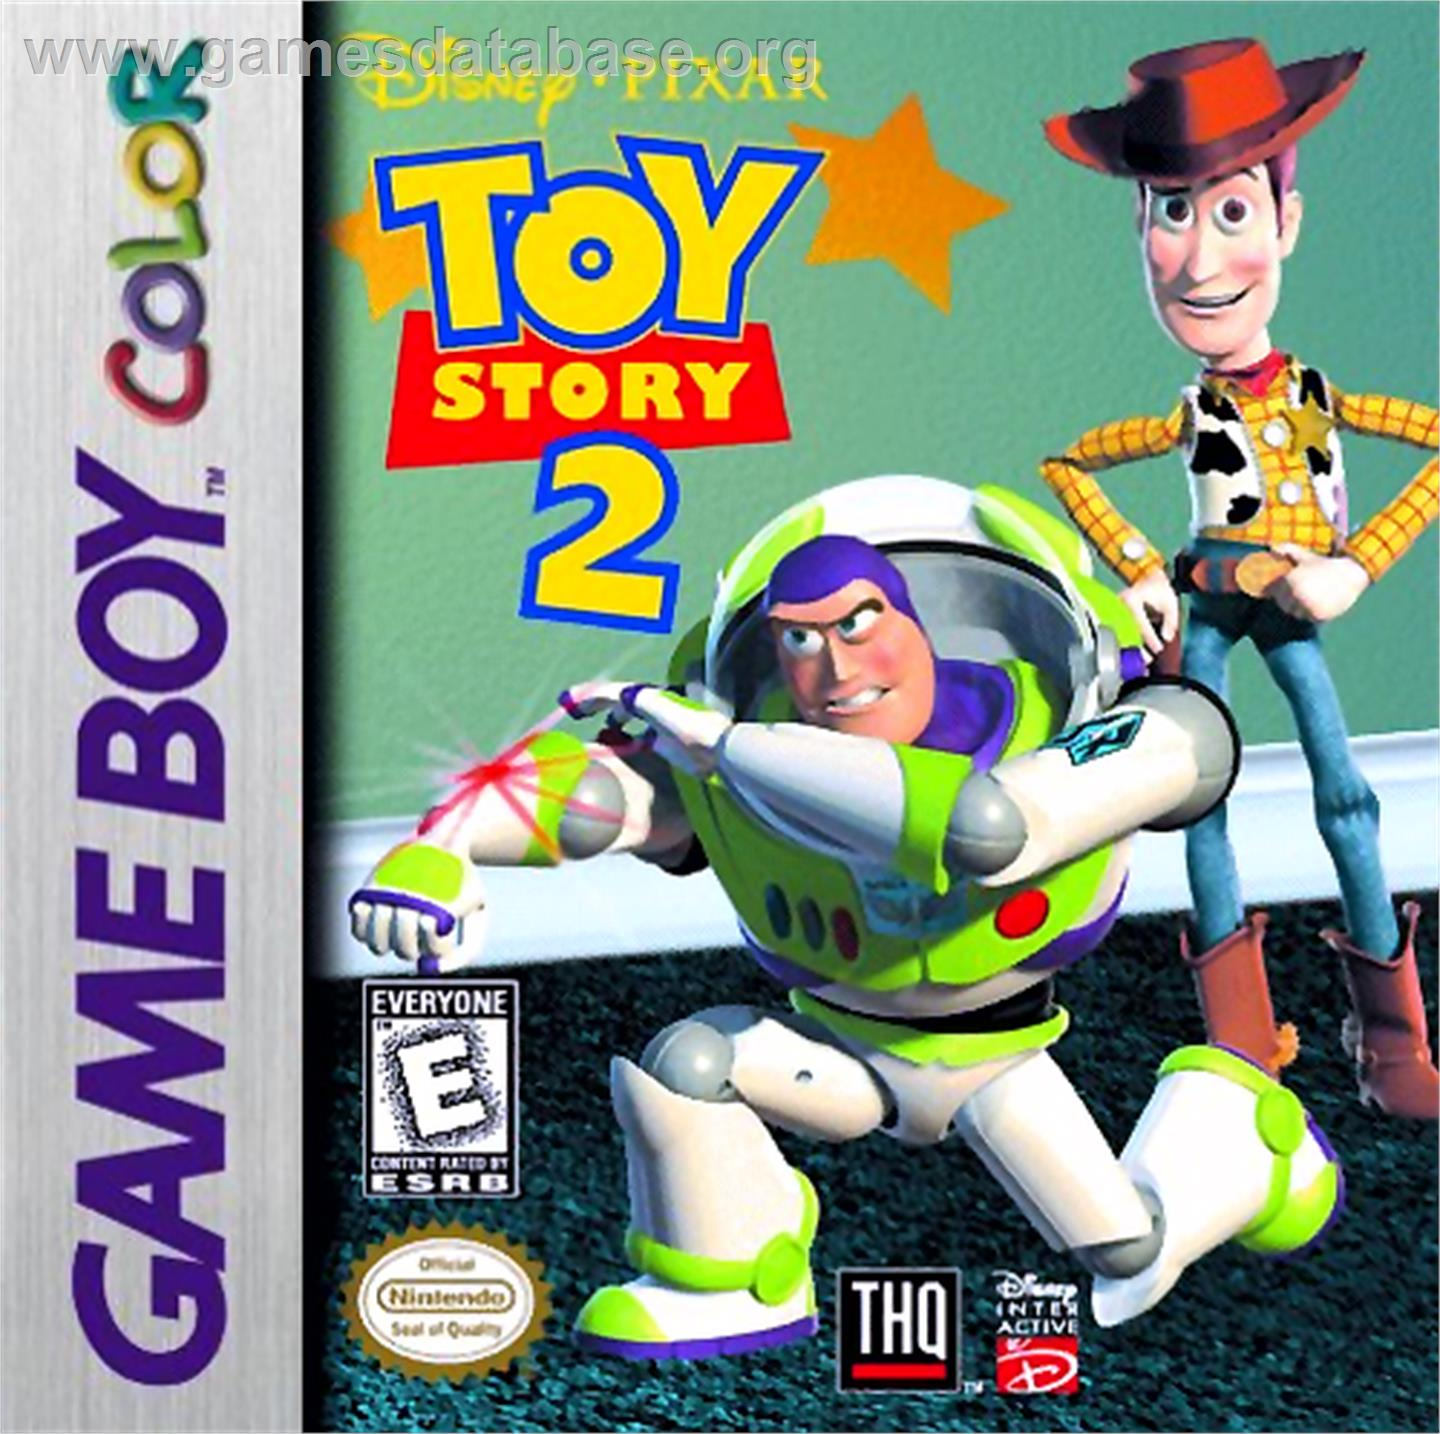 Toy Story 2: Buzz Lightyear to the Rescue - Nintendo Game Boy Color - Artwork - Box